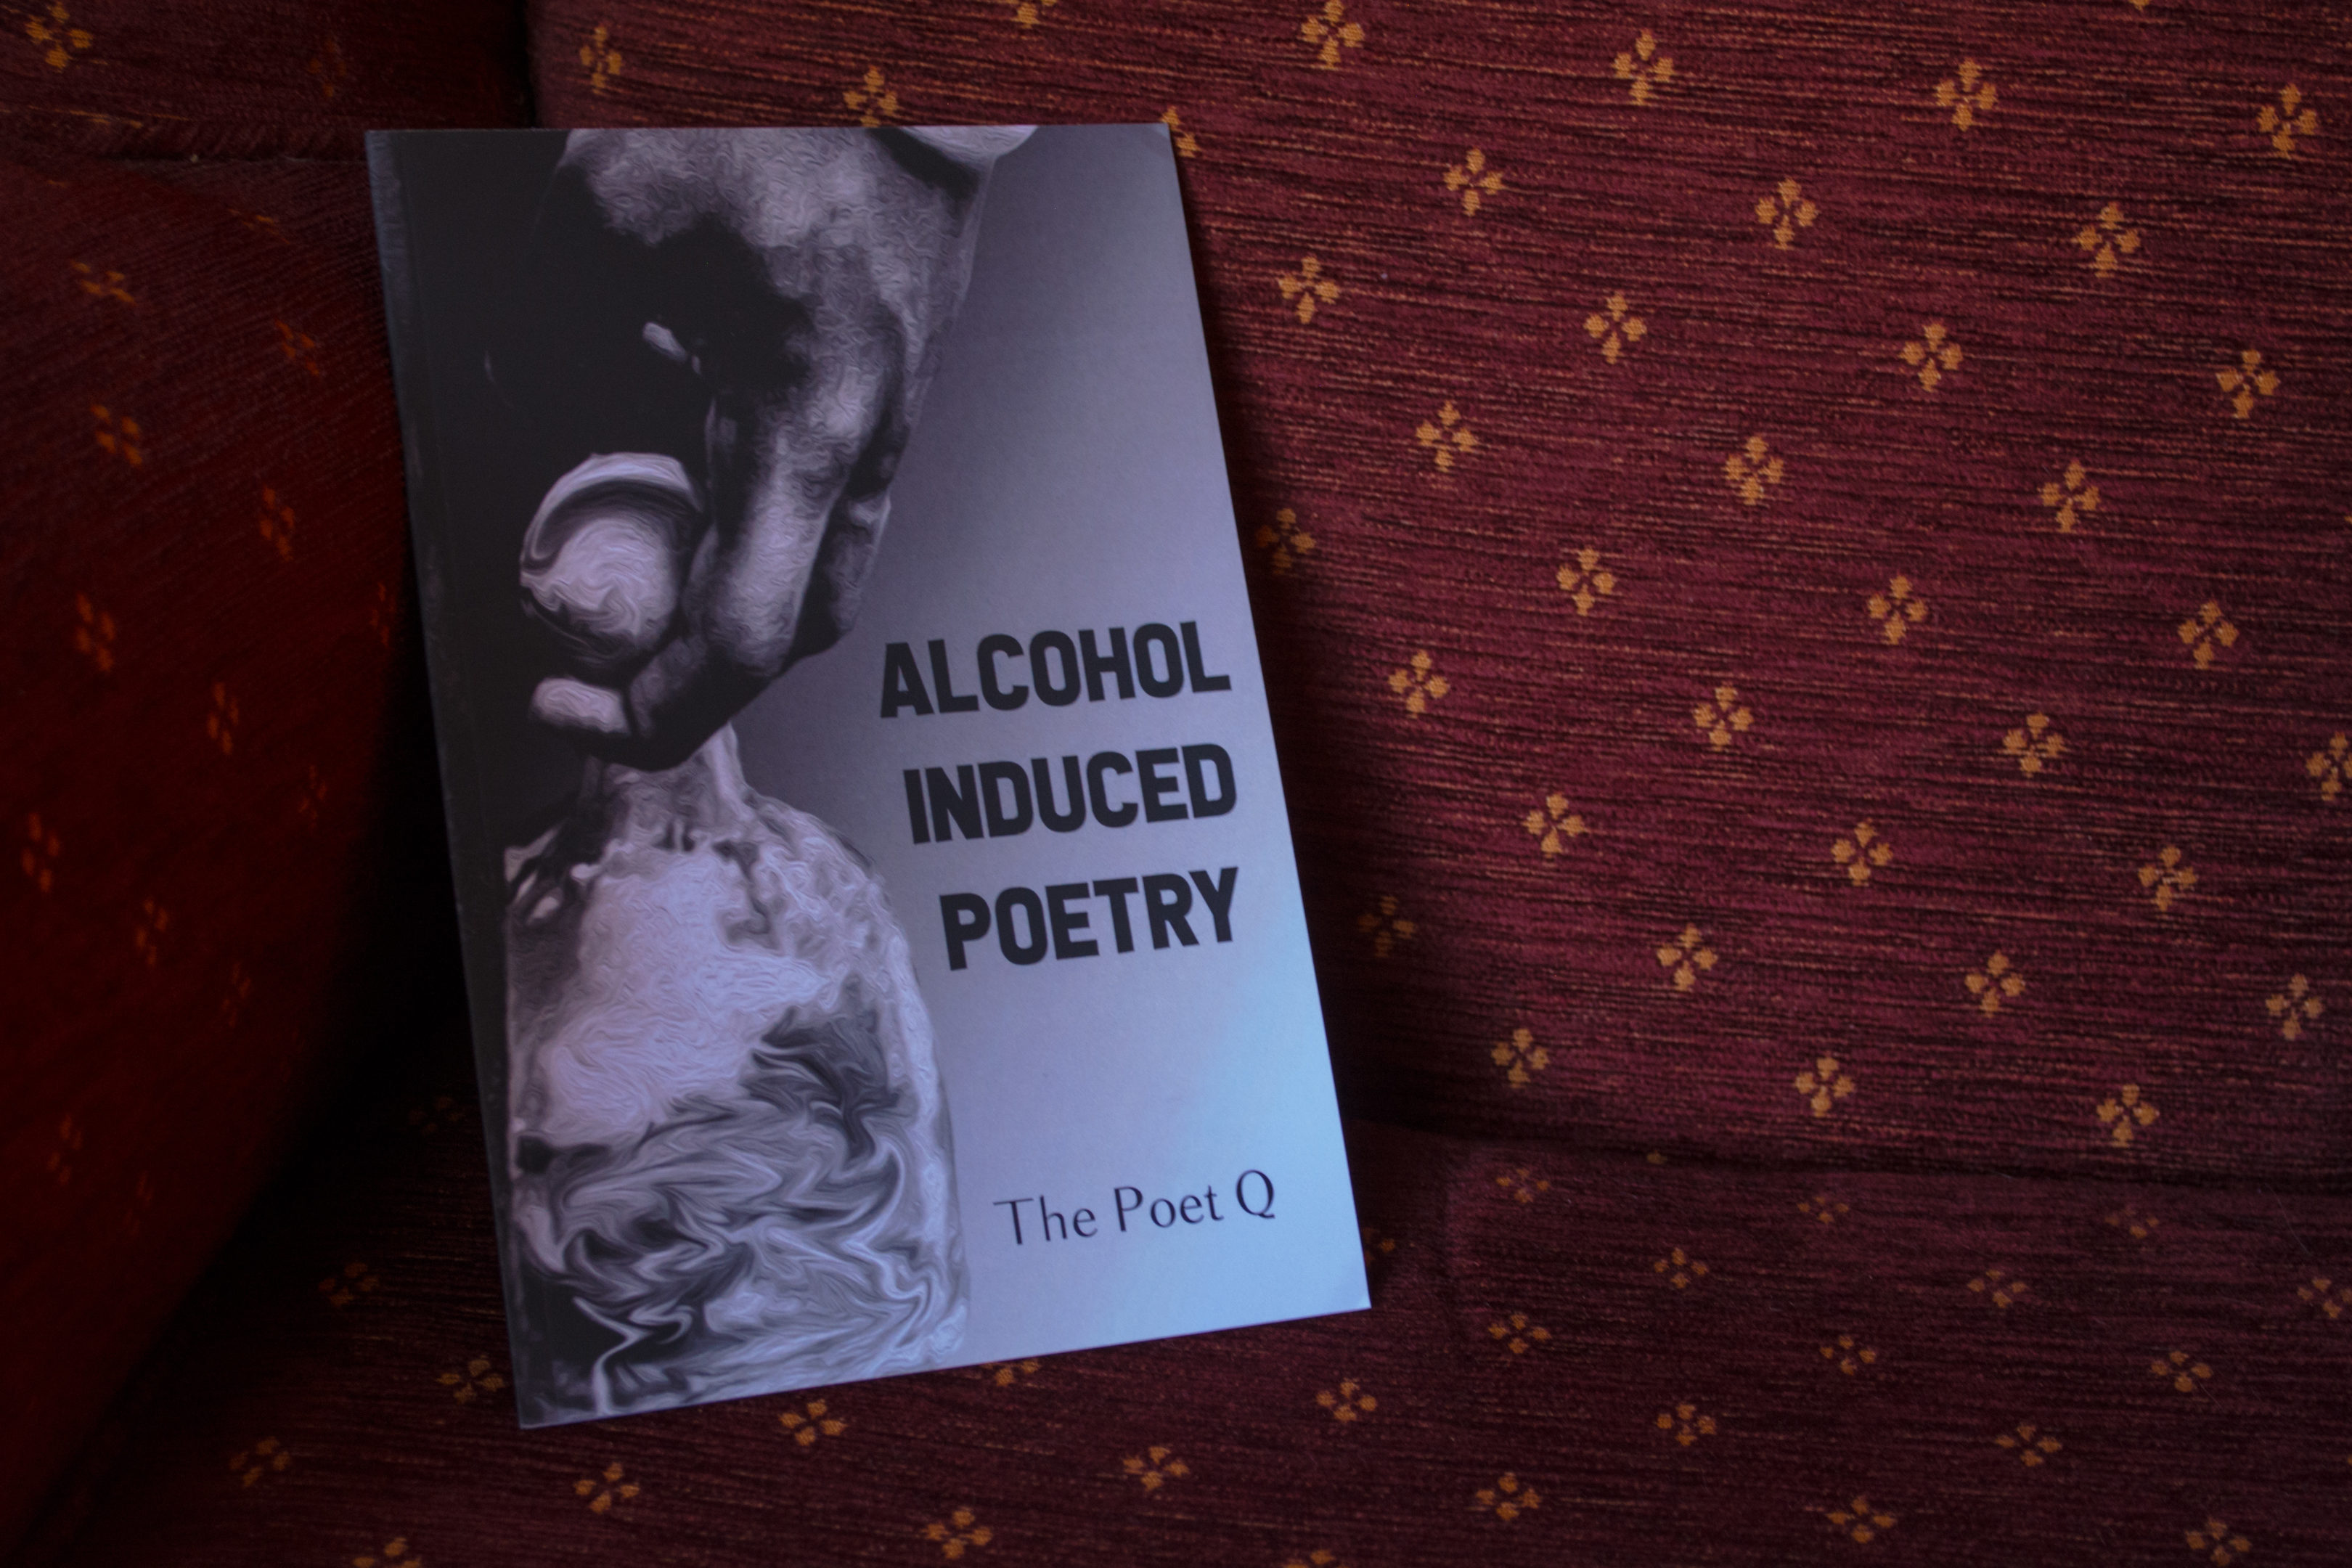 Interview with The Poet Q, writer of the chapbook, Alcohol Induced Poetry